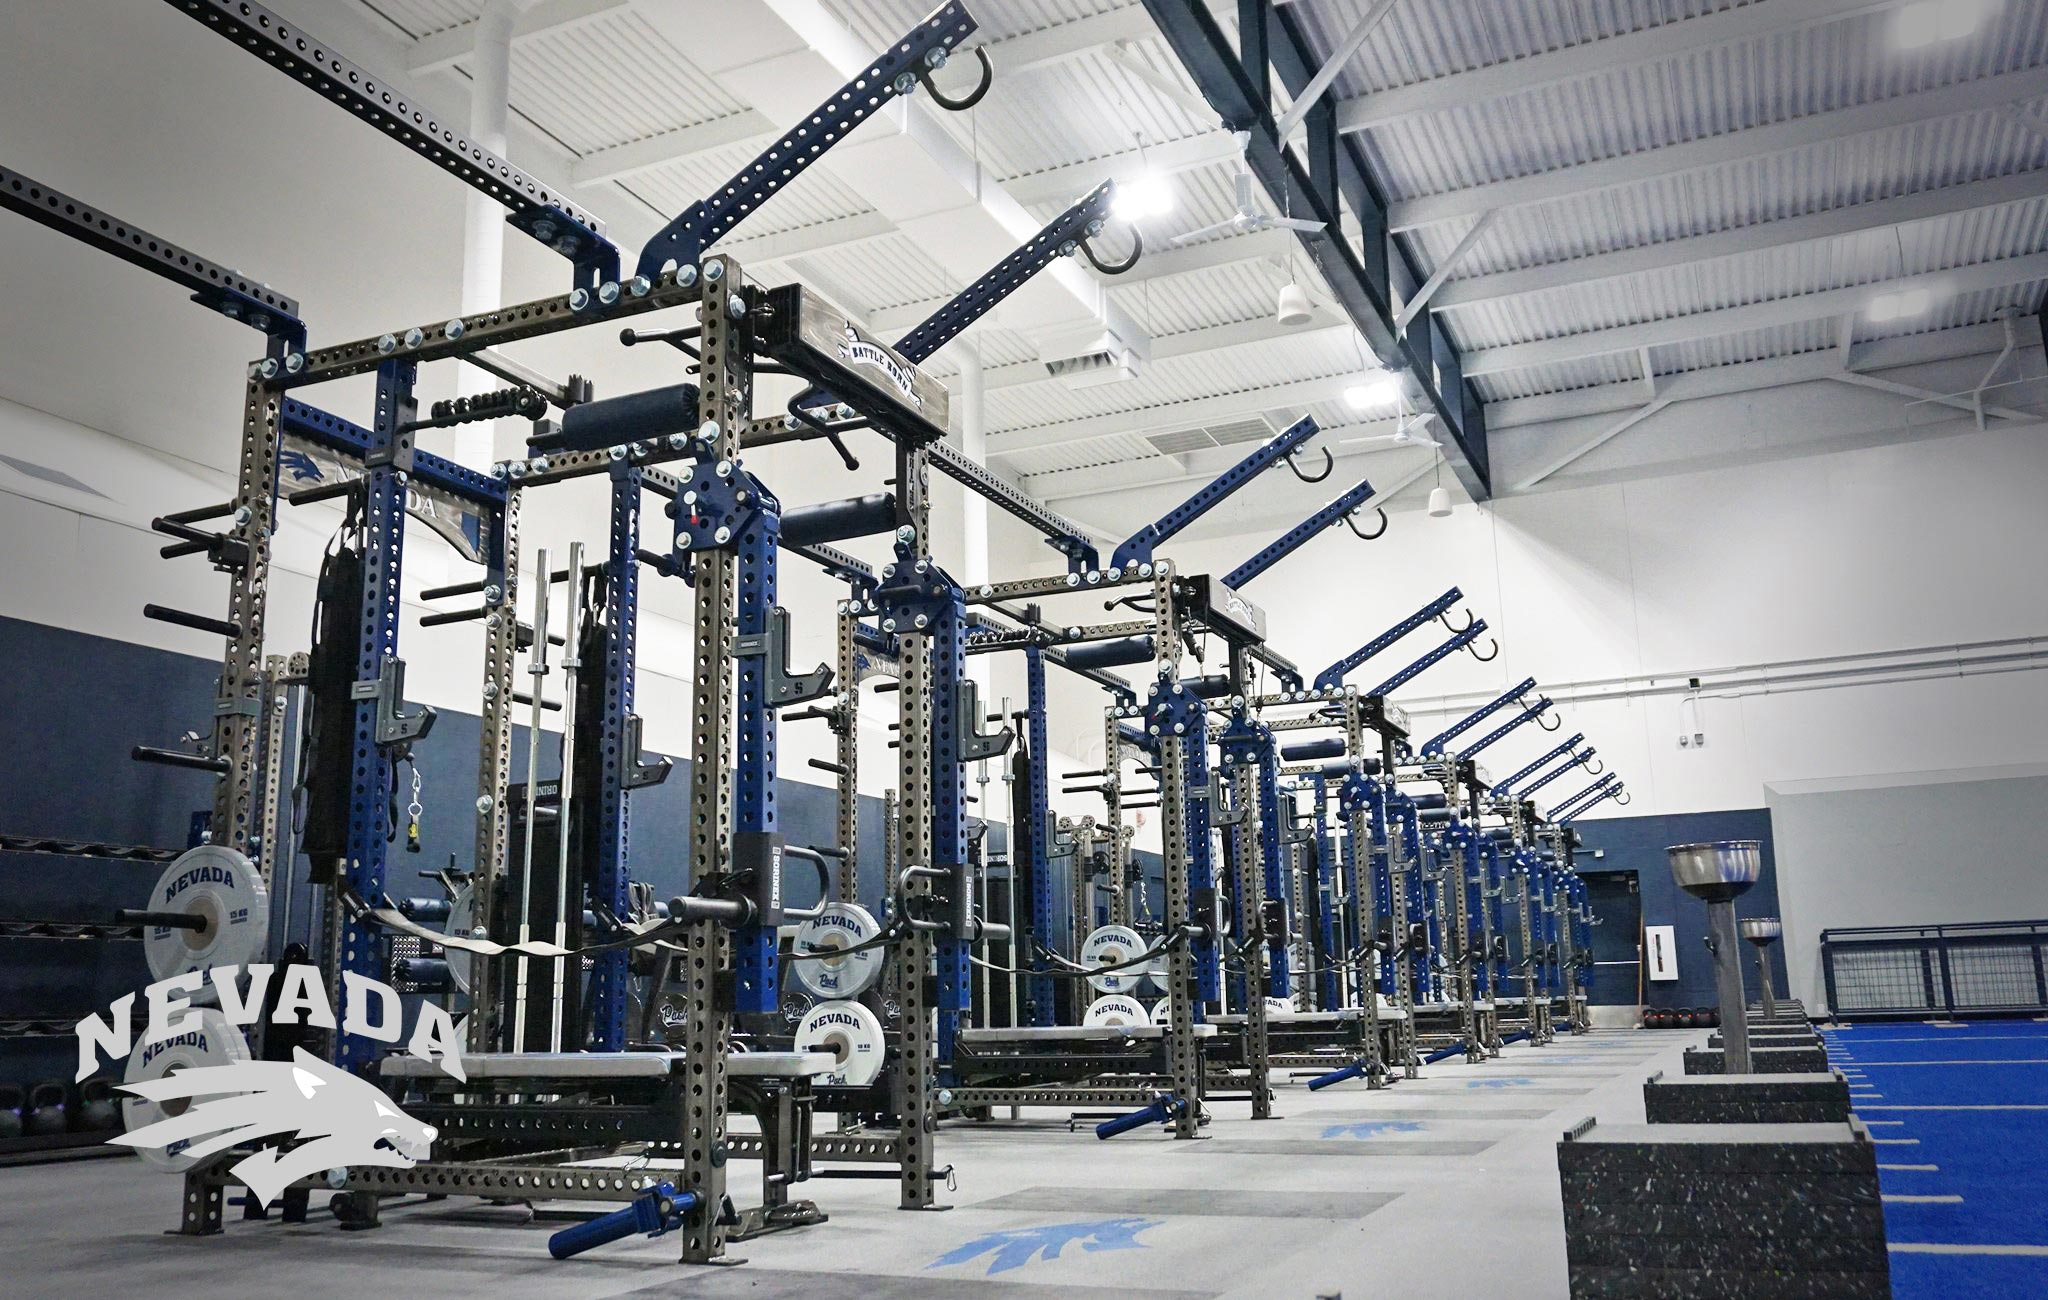 University of Nevada Sorinex strength and conditioning facility